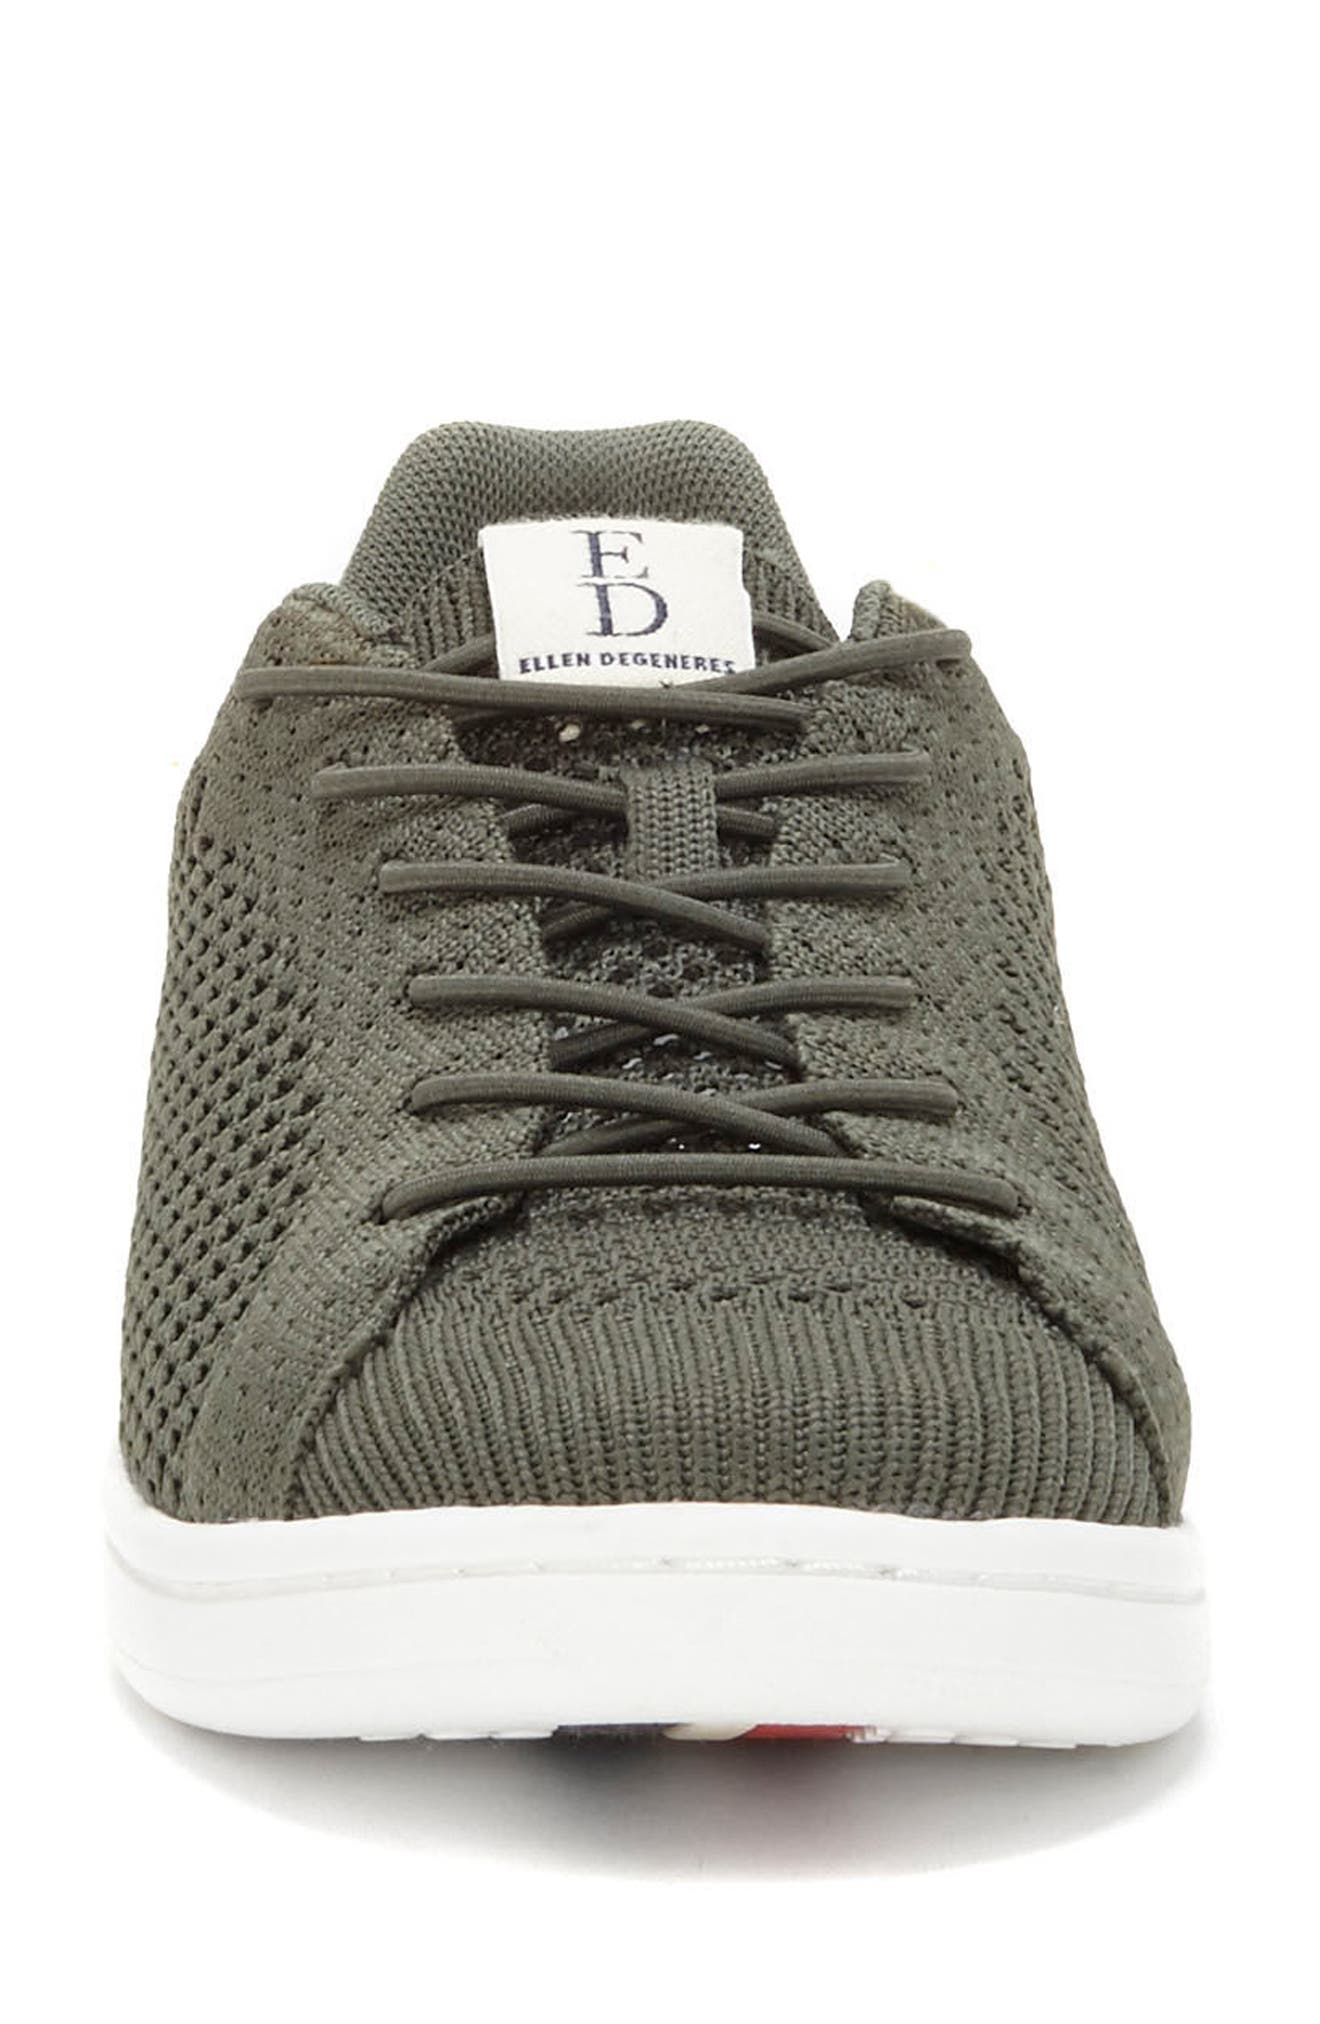 Casie Knit Sneaker,                             Alternate thumbnail 4, color,                             FOREST KNIT FABRIC